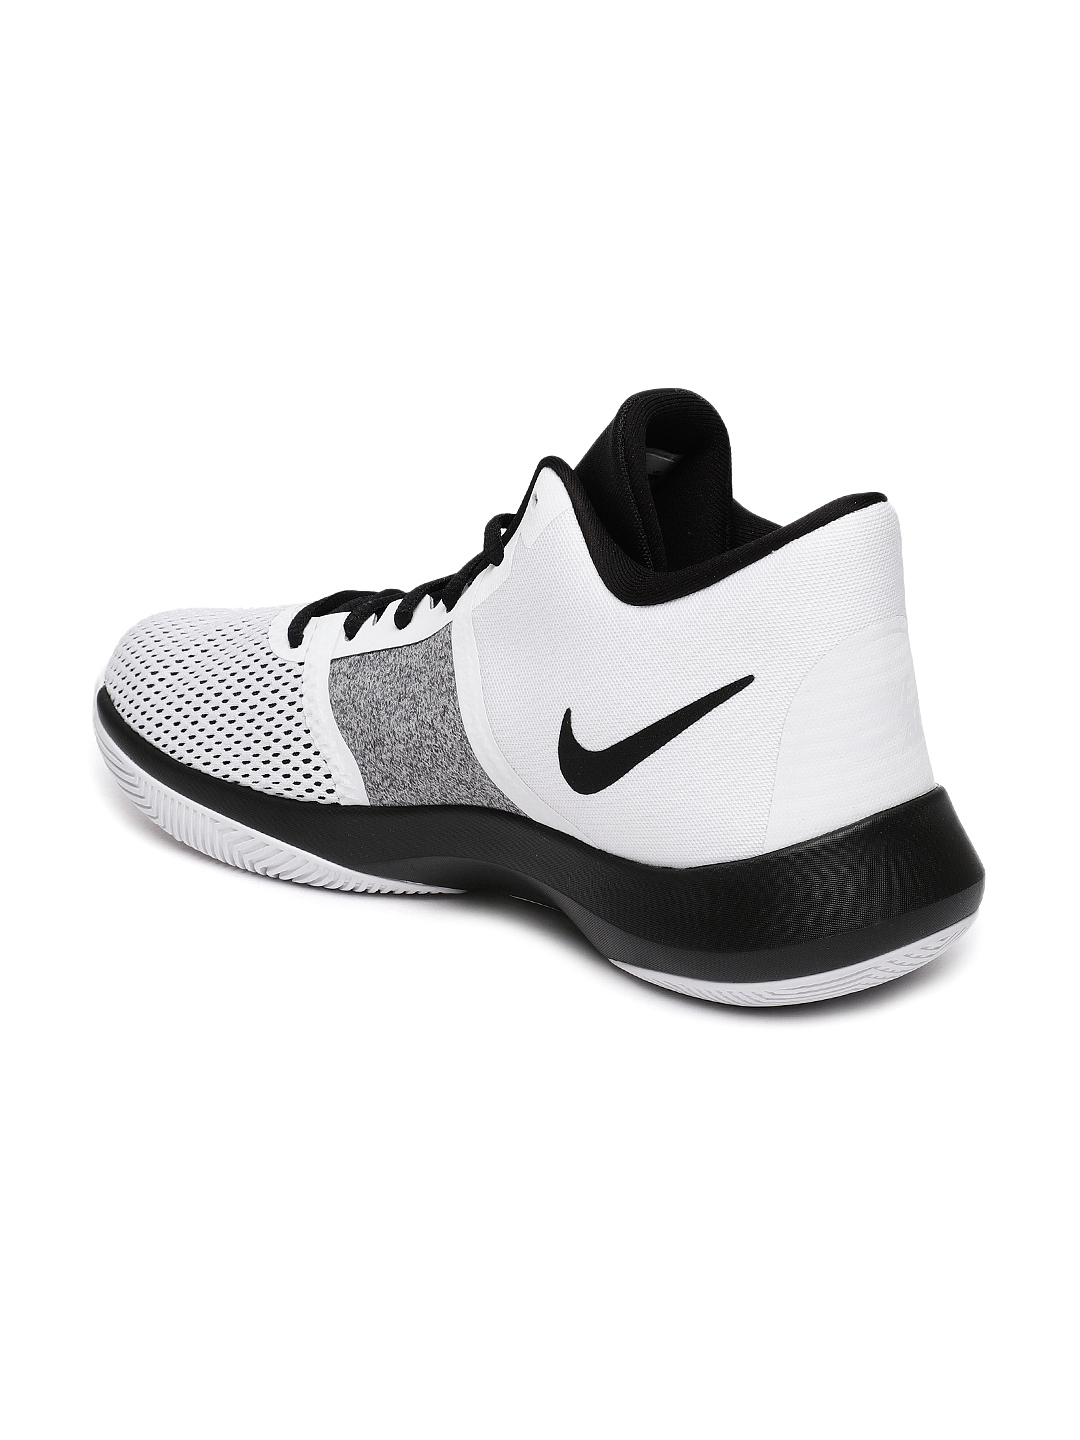 more photos 84a16 19a50 11523517055839-Nike-Men-White--Grey-Air-Precision-II-Basketball-Shoes-3091523517055664-2.jpg